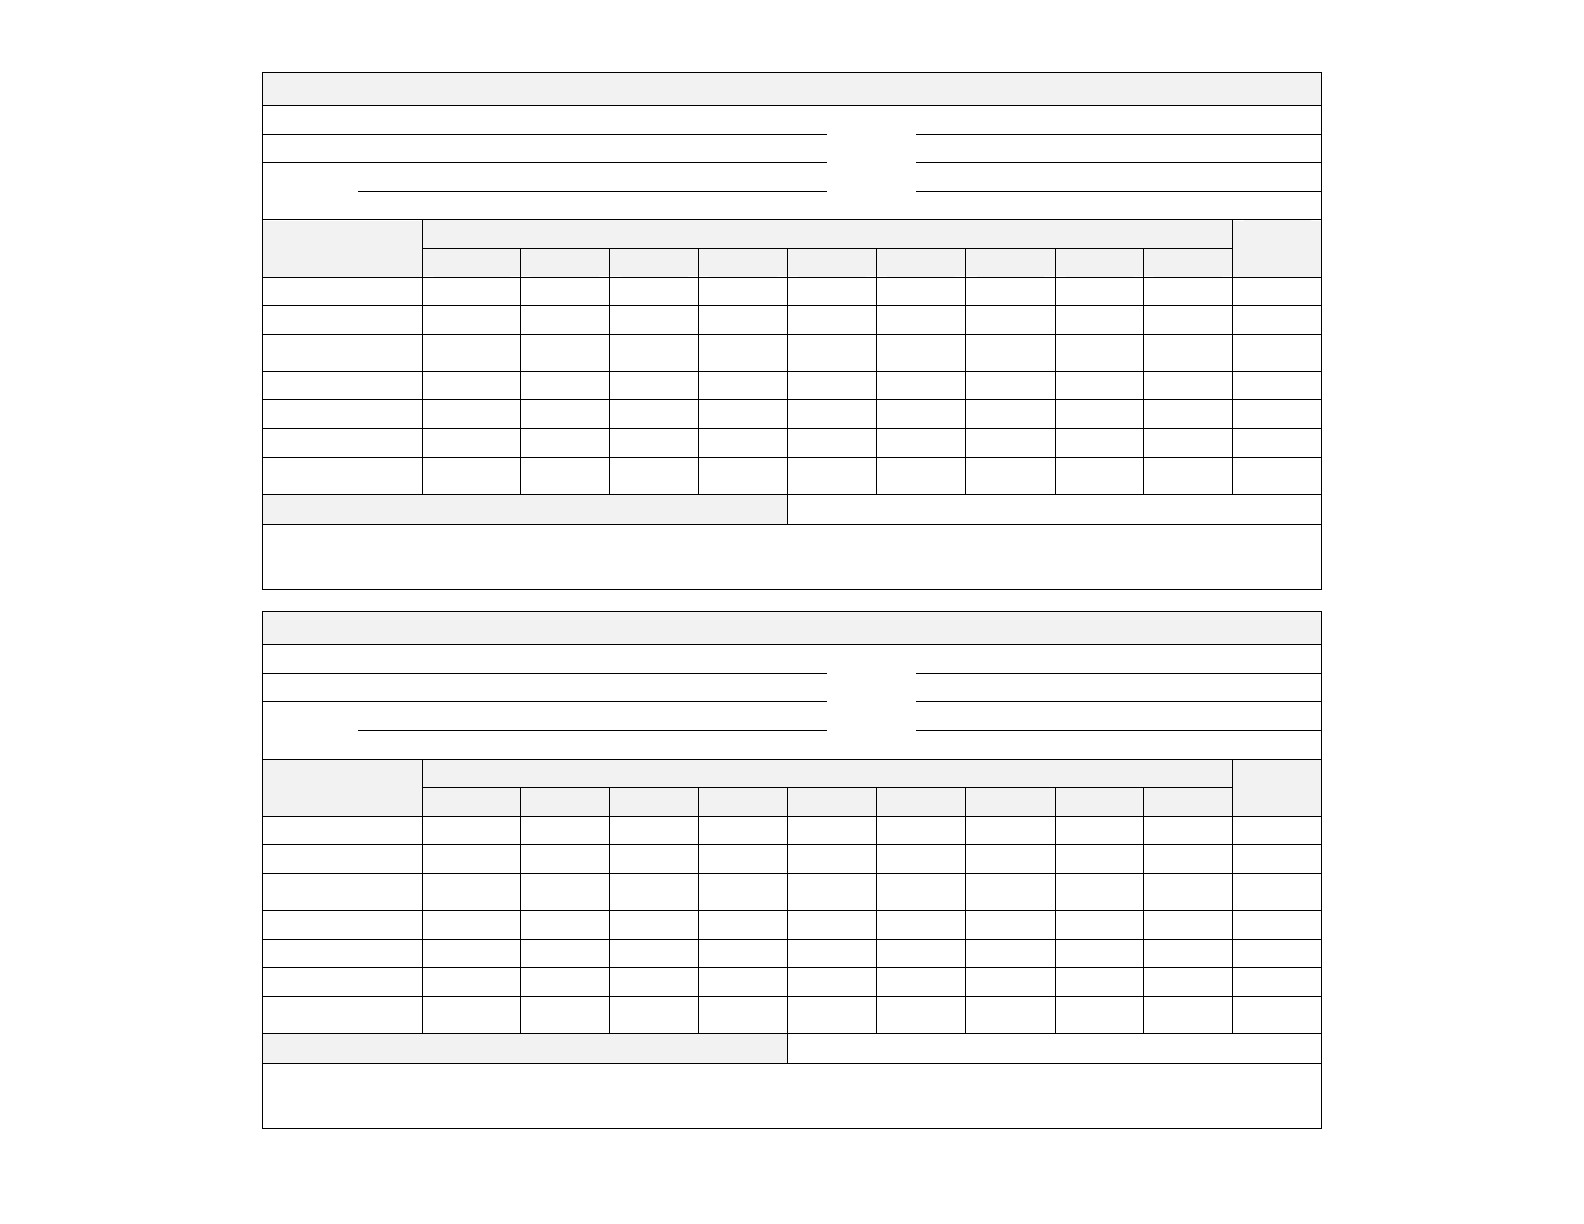 Kickball Roster Template Kickball Score Sheet Free Download